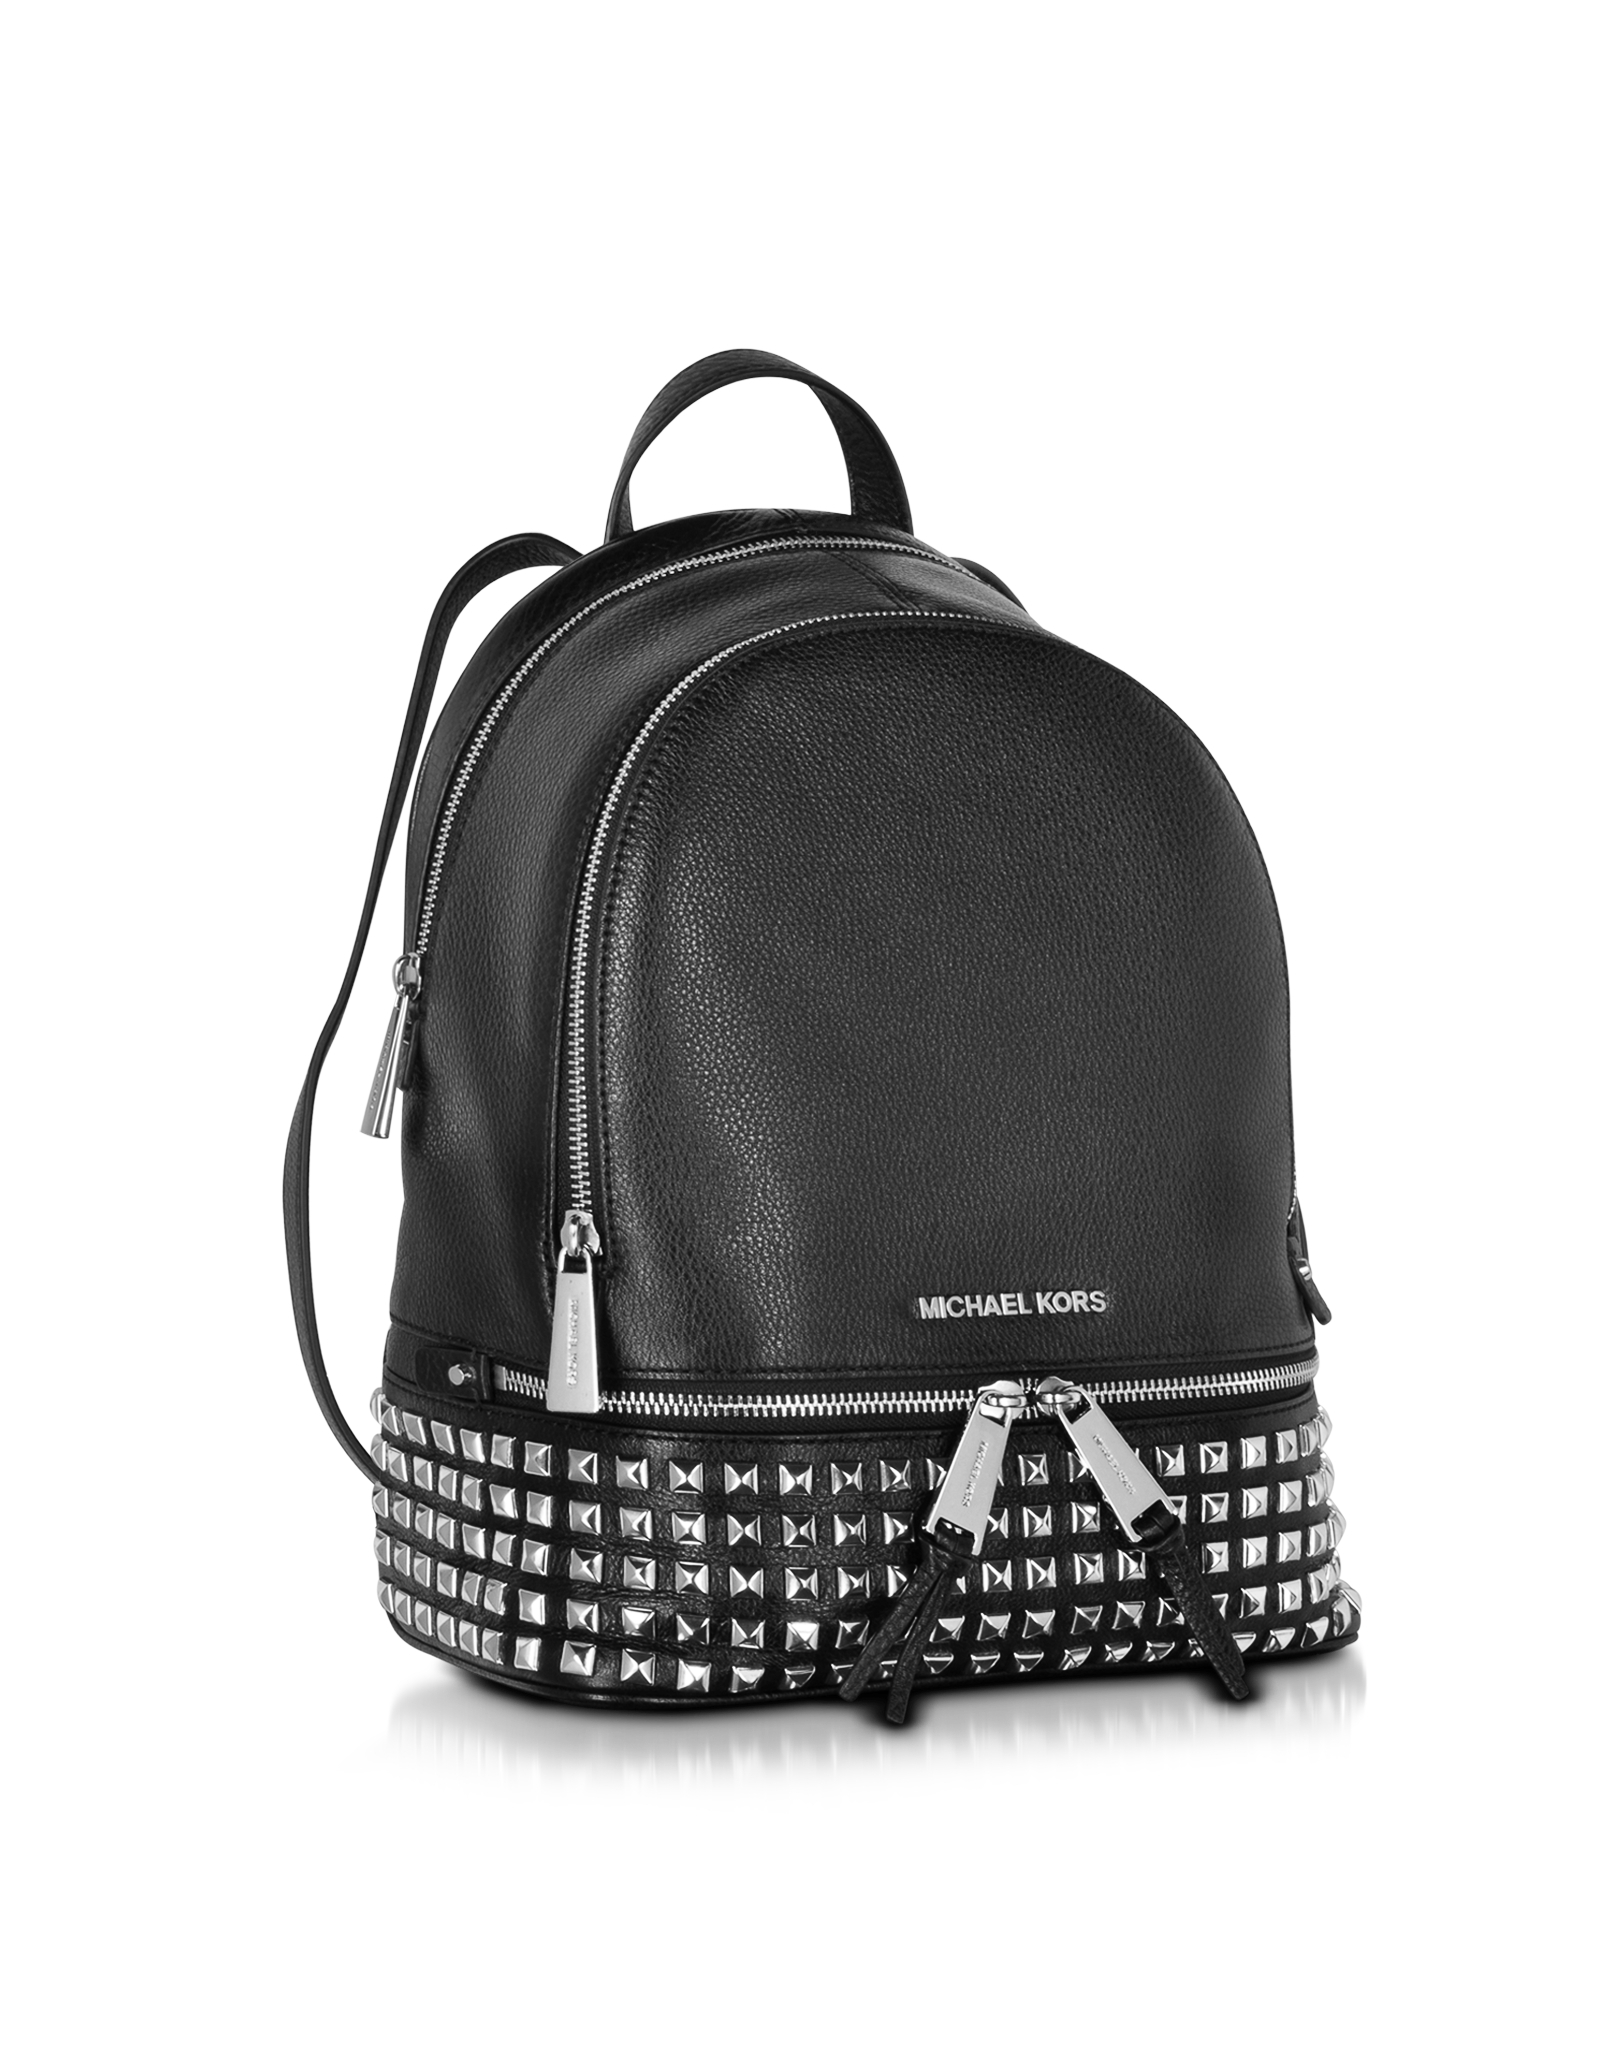 3fc96647c954 Lyst - Michael Kors Rhea Zip Small Studded Leather Backpack in Black